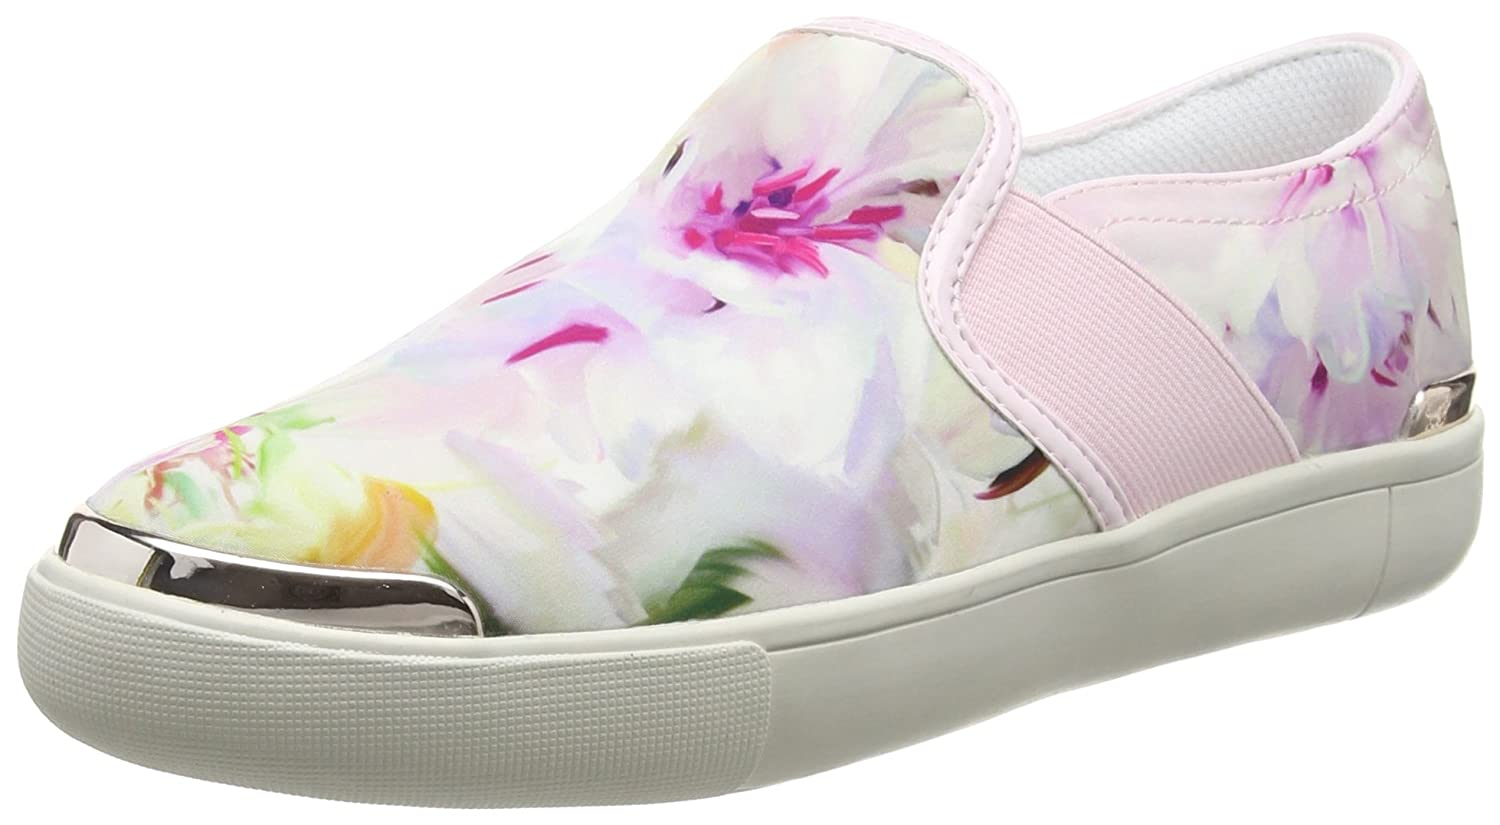 Ted Baker Laulei, B071YX9416 Baskets Basses Femme Multicolore Femme - Multicolor Ted (Hanging Gardens) 2a3c9f2 - latesttechnology.space